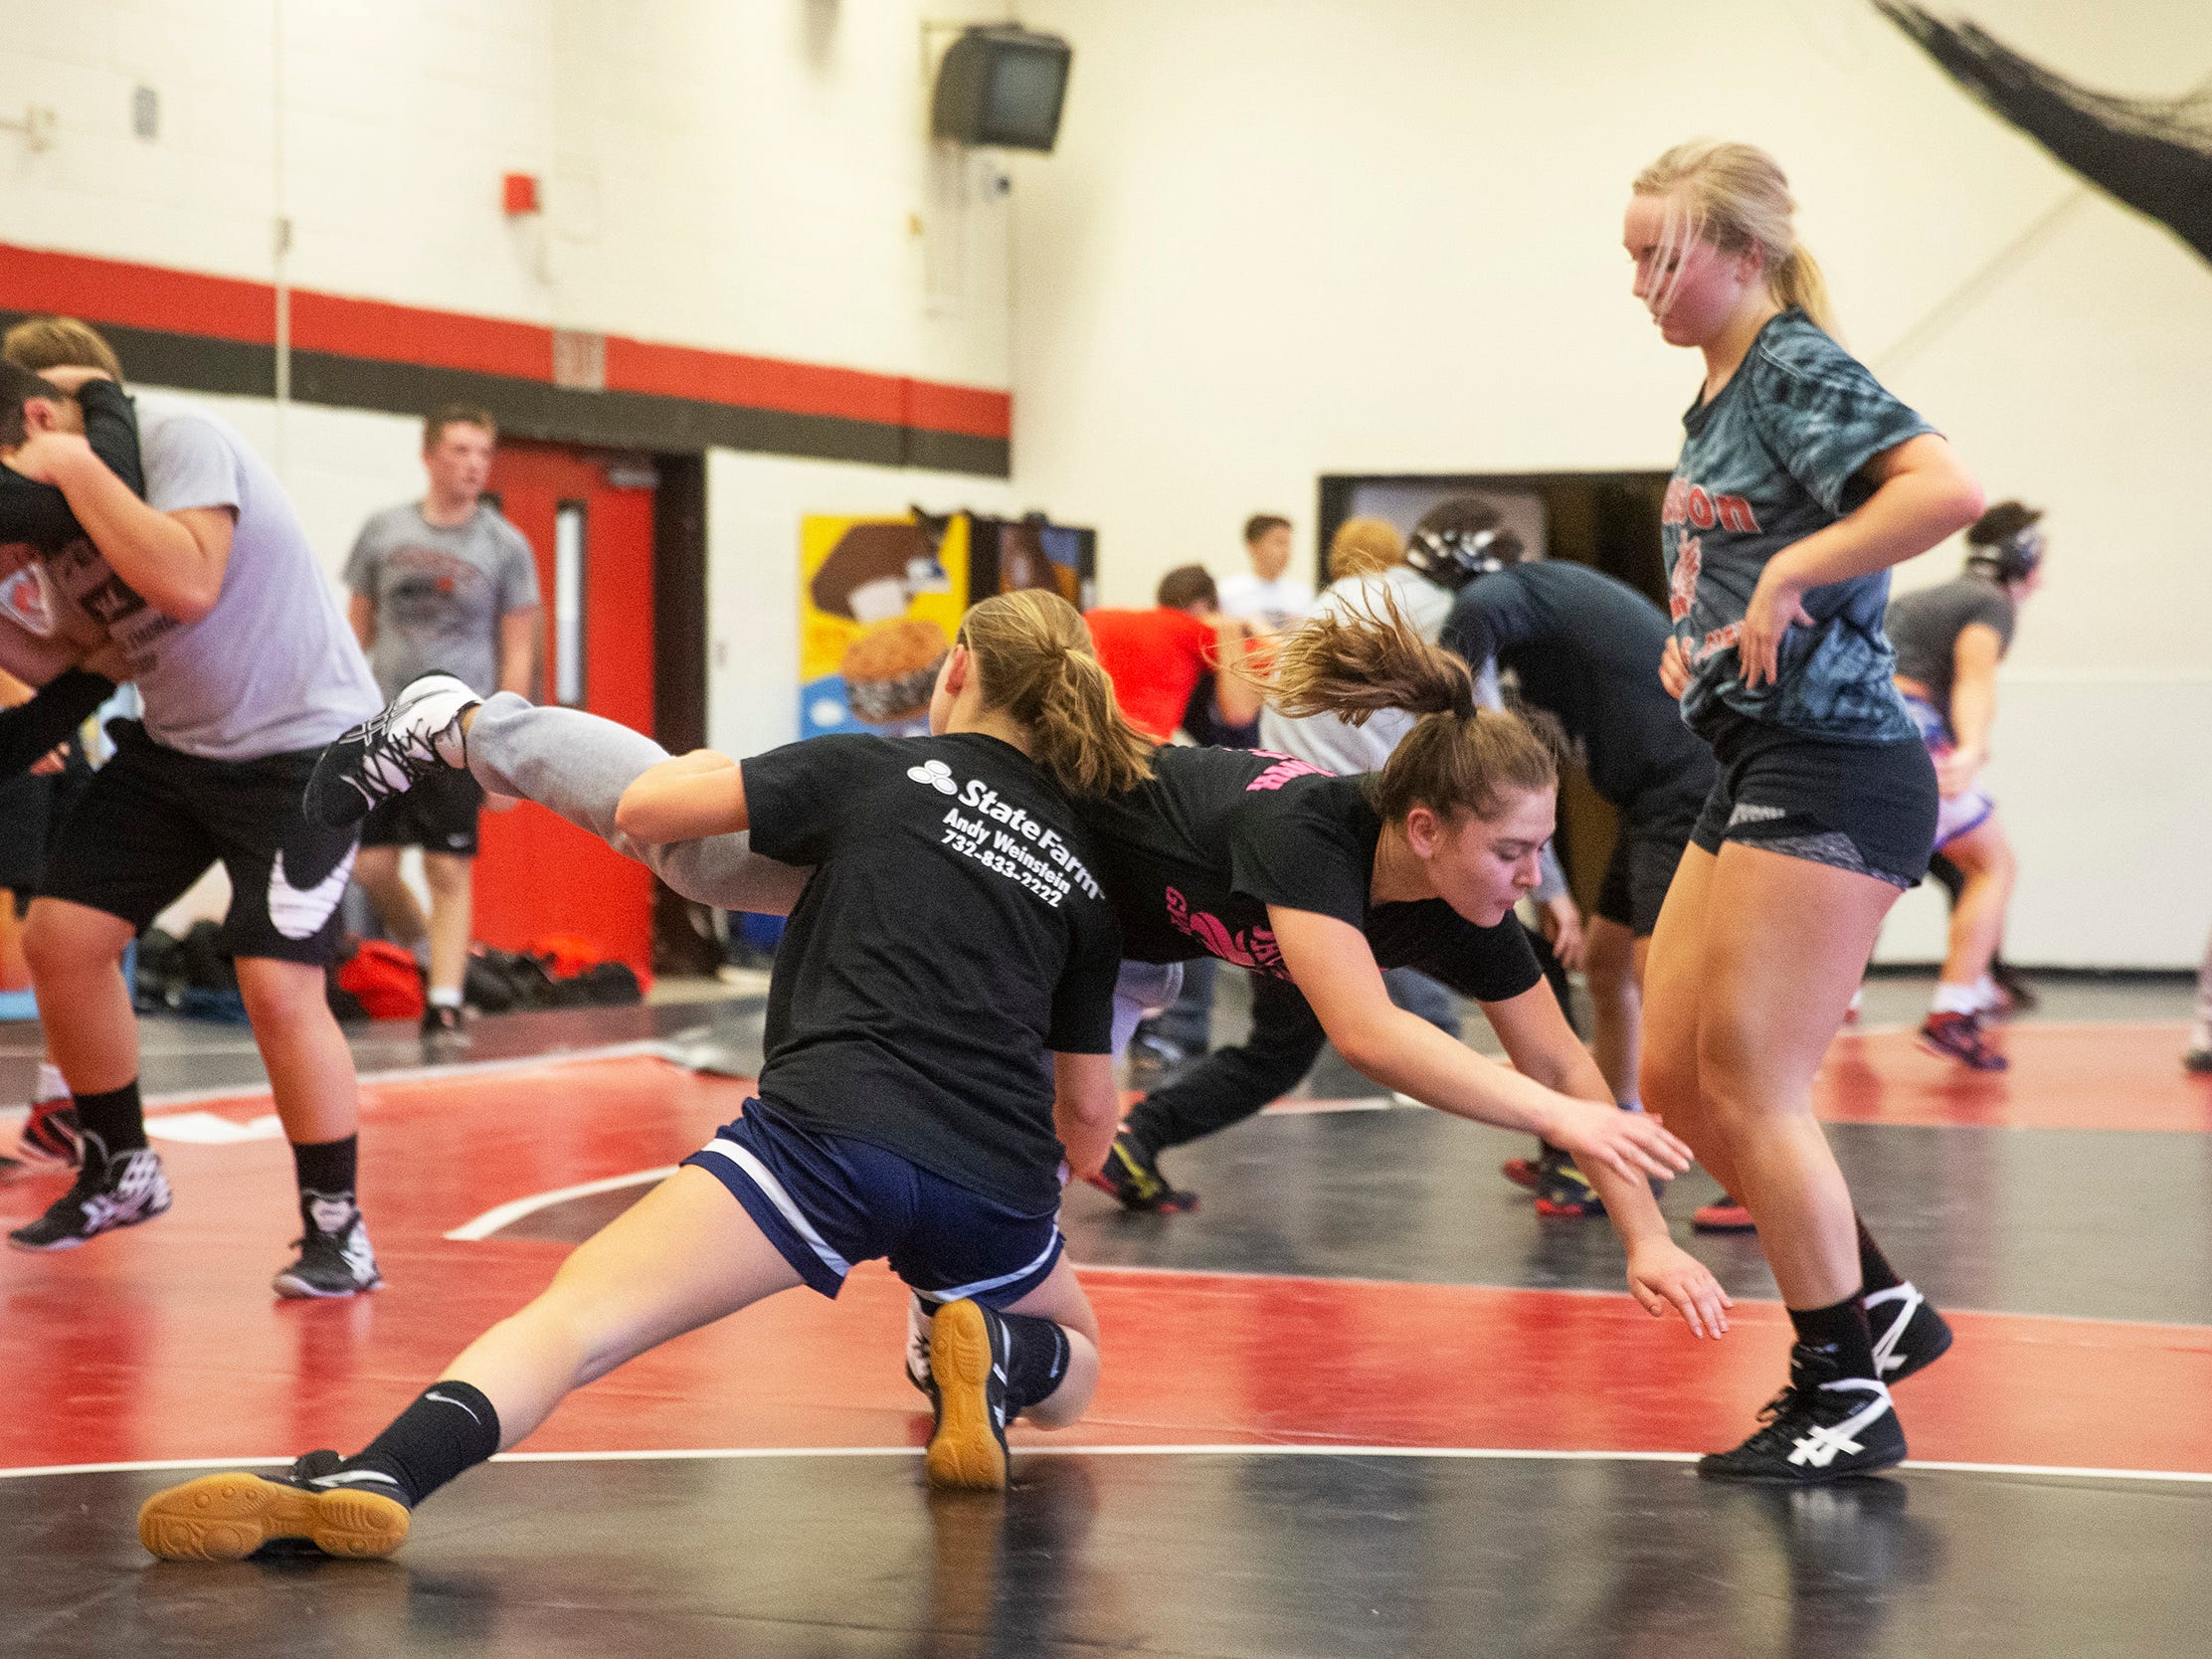 Hannah Reese works on takedowns with Kayla Gregory as Avary Meyers looks on. NJSIAA is offering wrestling for girls this year and they will participate in an all girls tournament at the end of the season. Jackson Memorial Wrestling is fielding a full girls team this year. Boy and girls practice together although mostly match up with partners of their own sex for most drills.